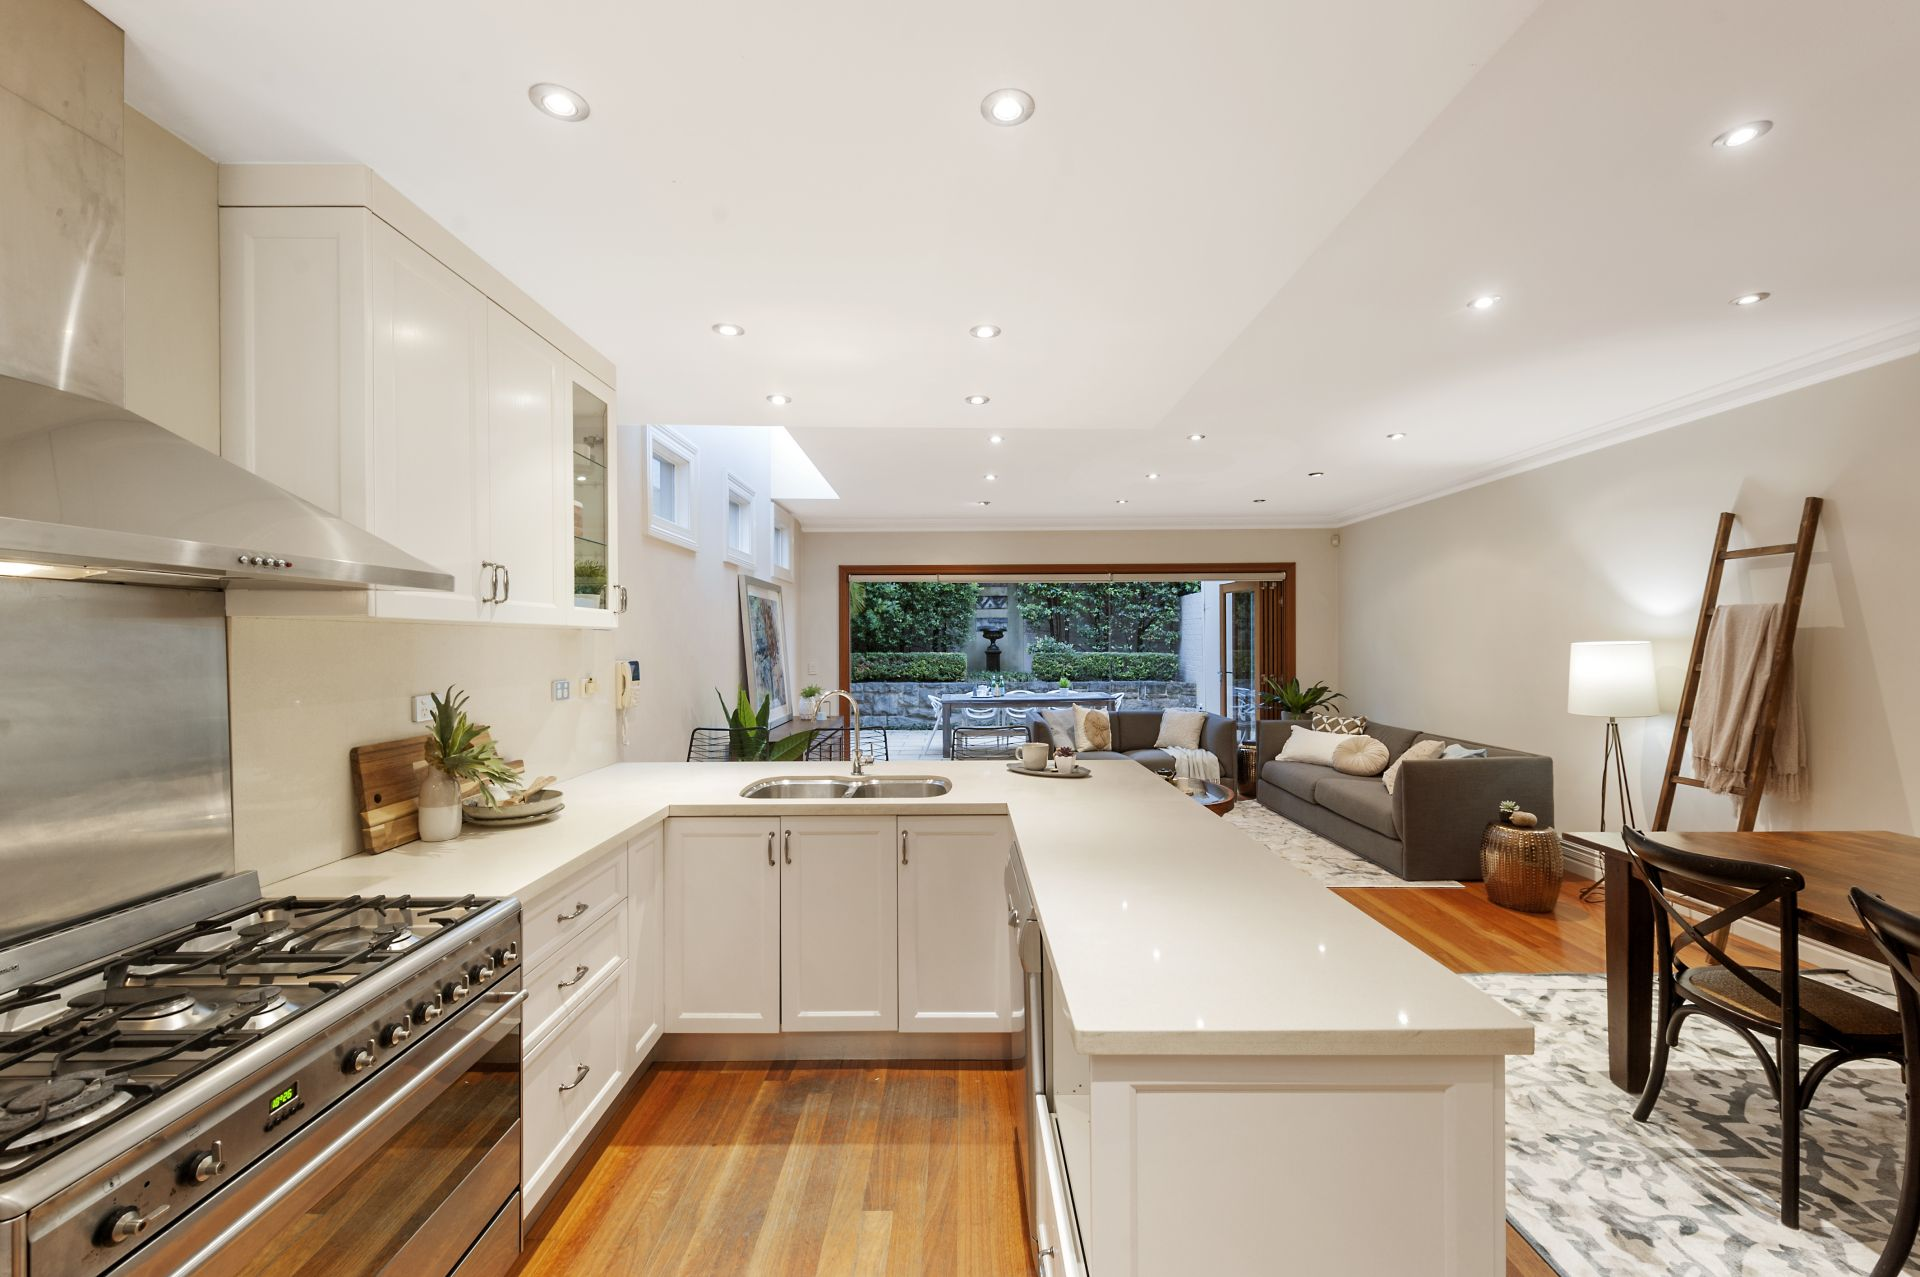 Kitchens Drummoyne 12 Edwin Street Drummoyne Nsw 2047 House For Rent 4693668